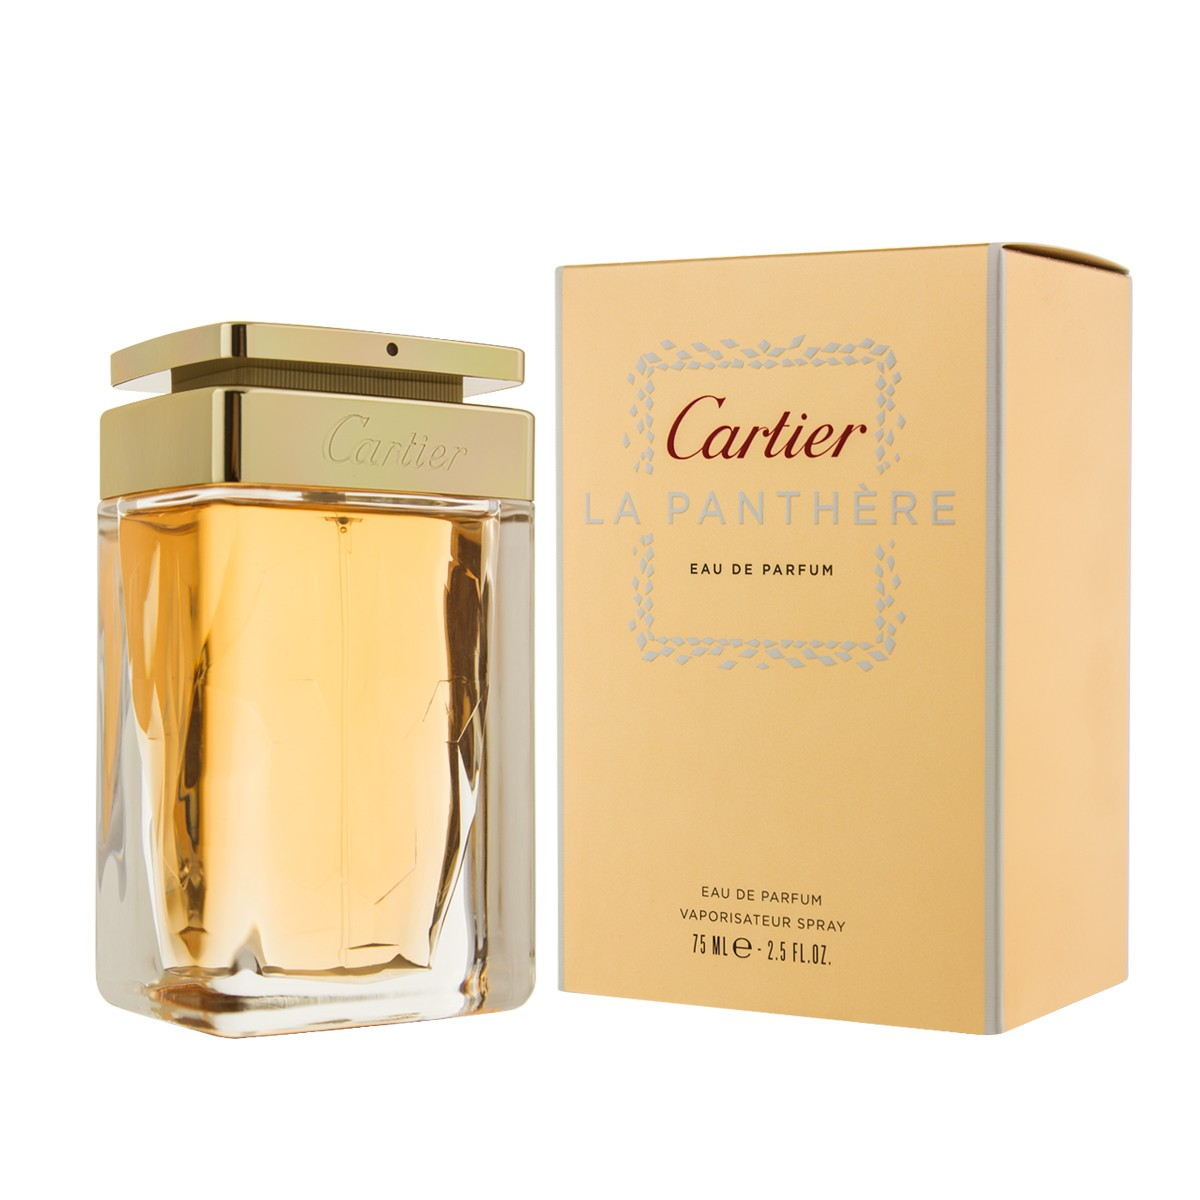 Cartier La Panthere eau de parfum donna spray 75 ml